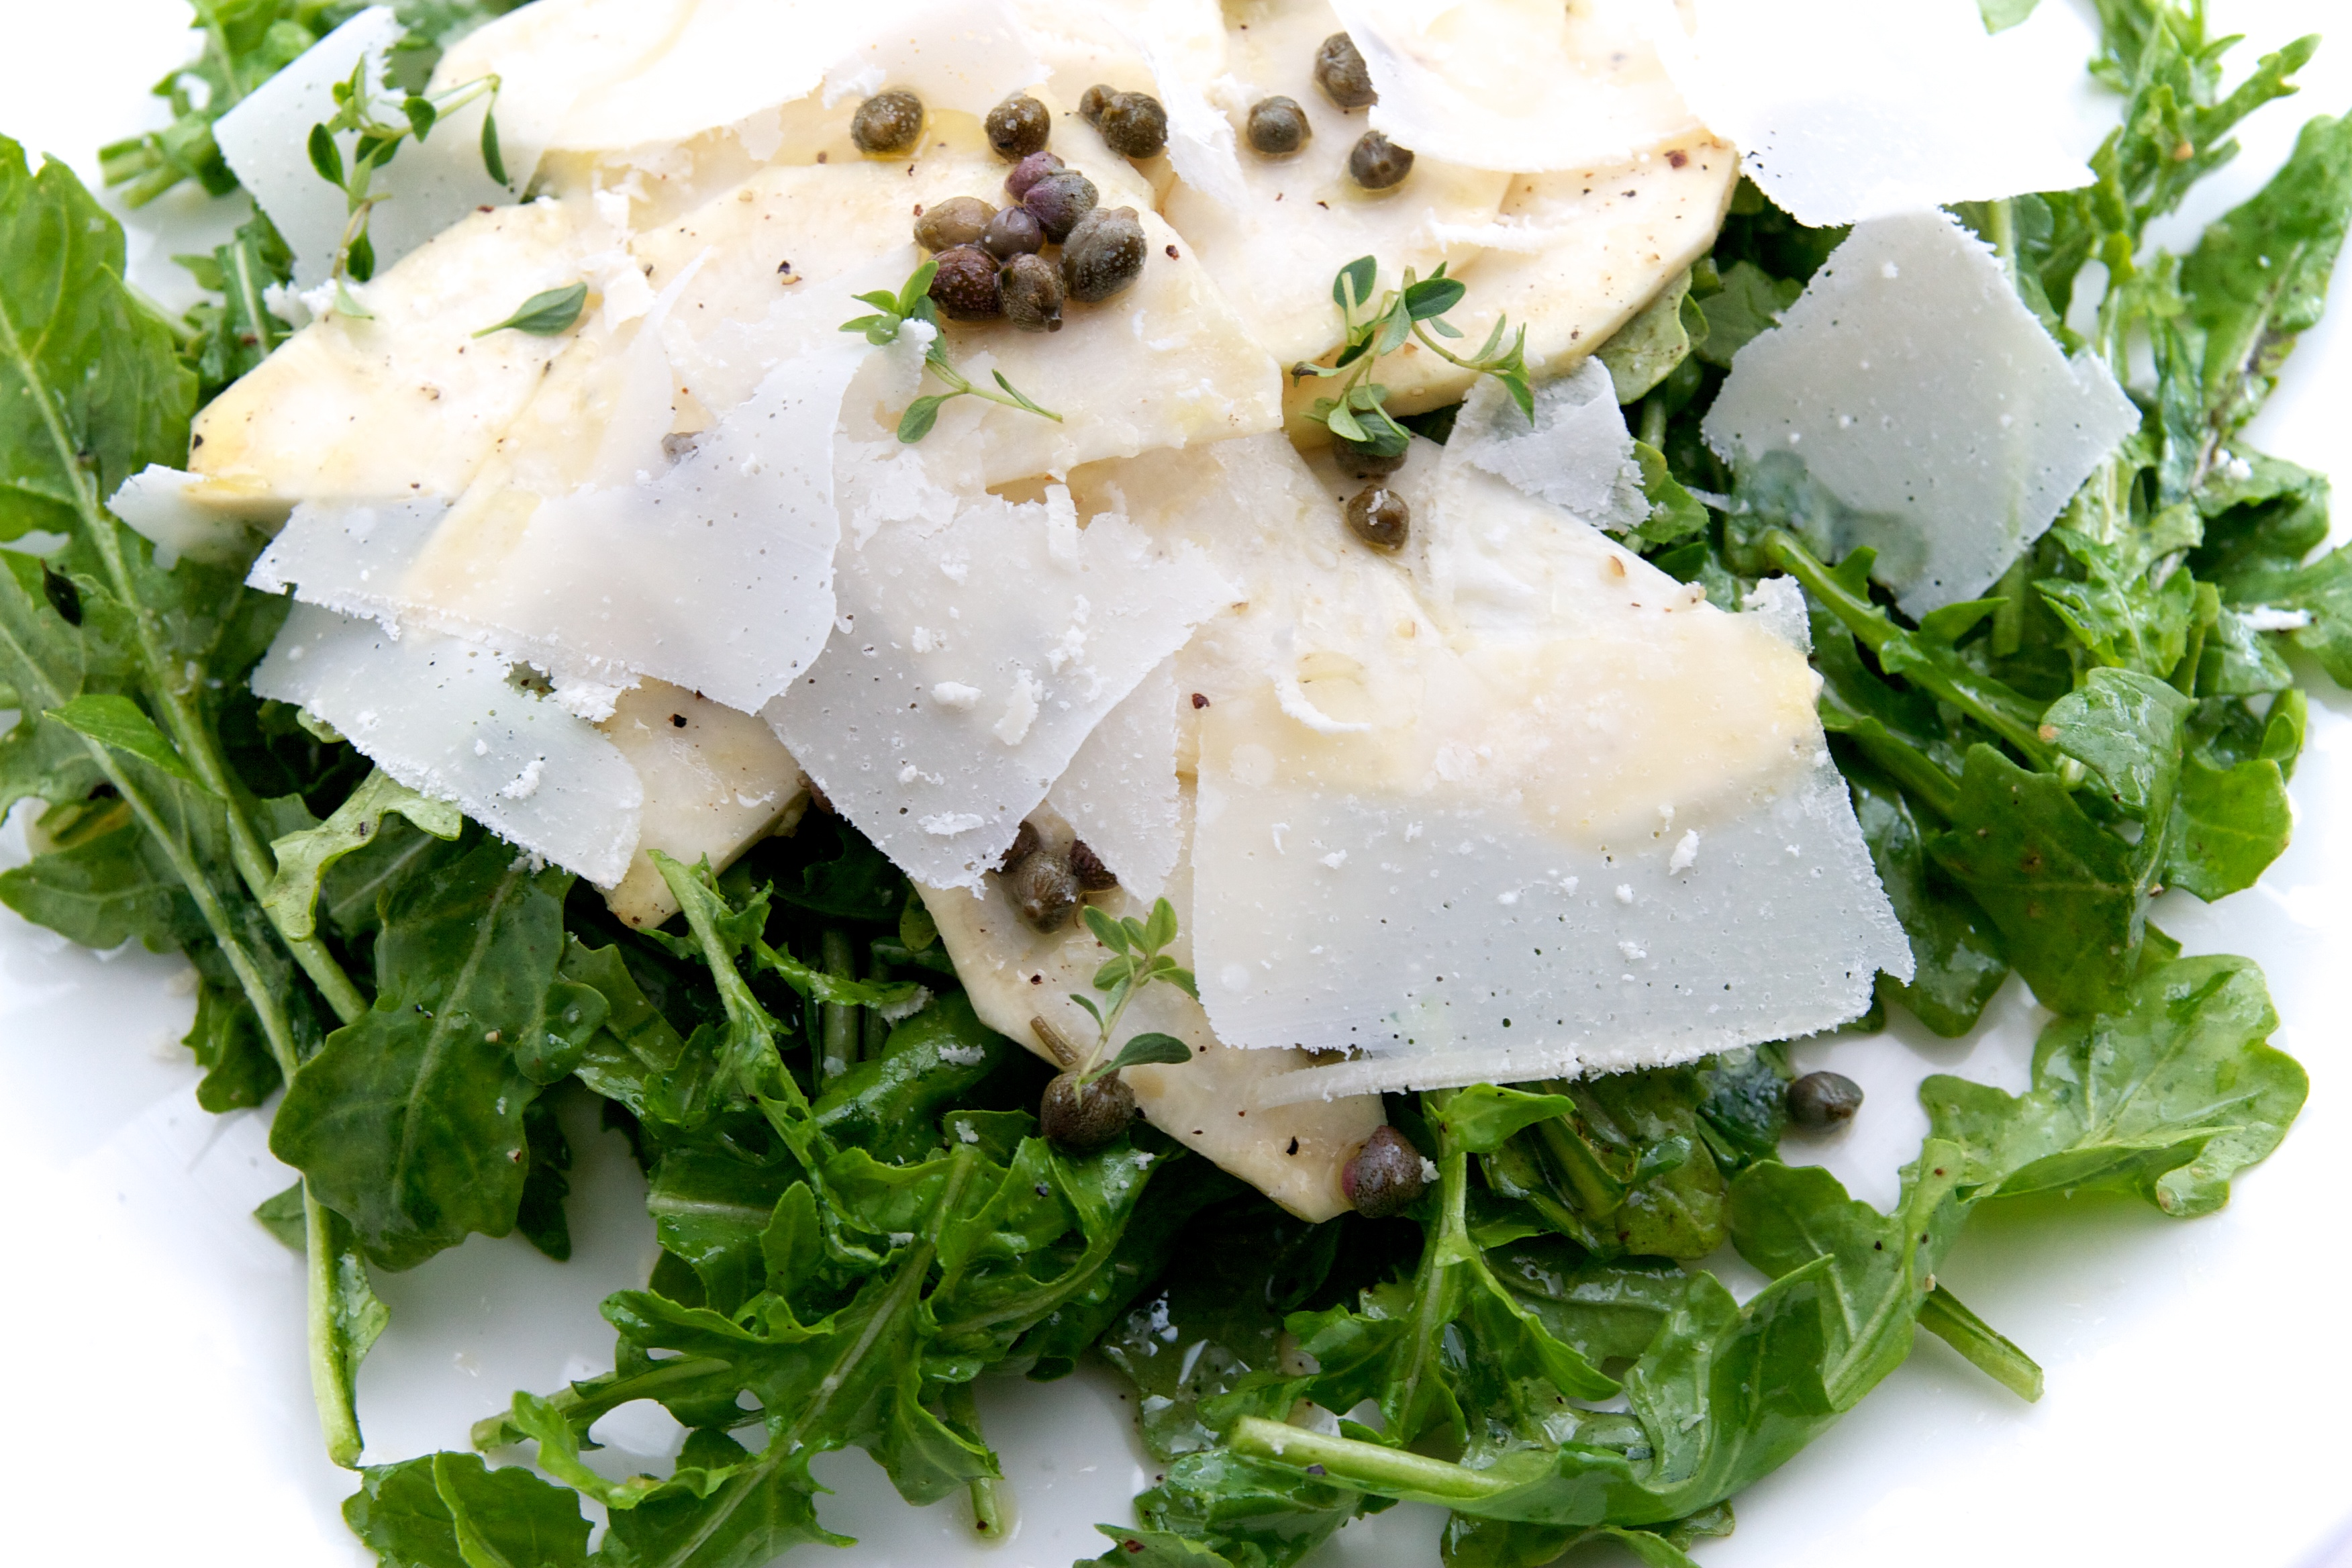 Celery Root &amp; Rocket Salad with Lemon, Capers &amp; Parmesan 